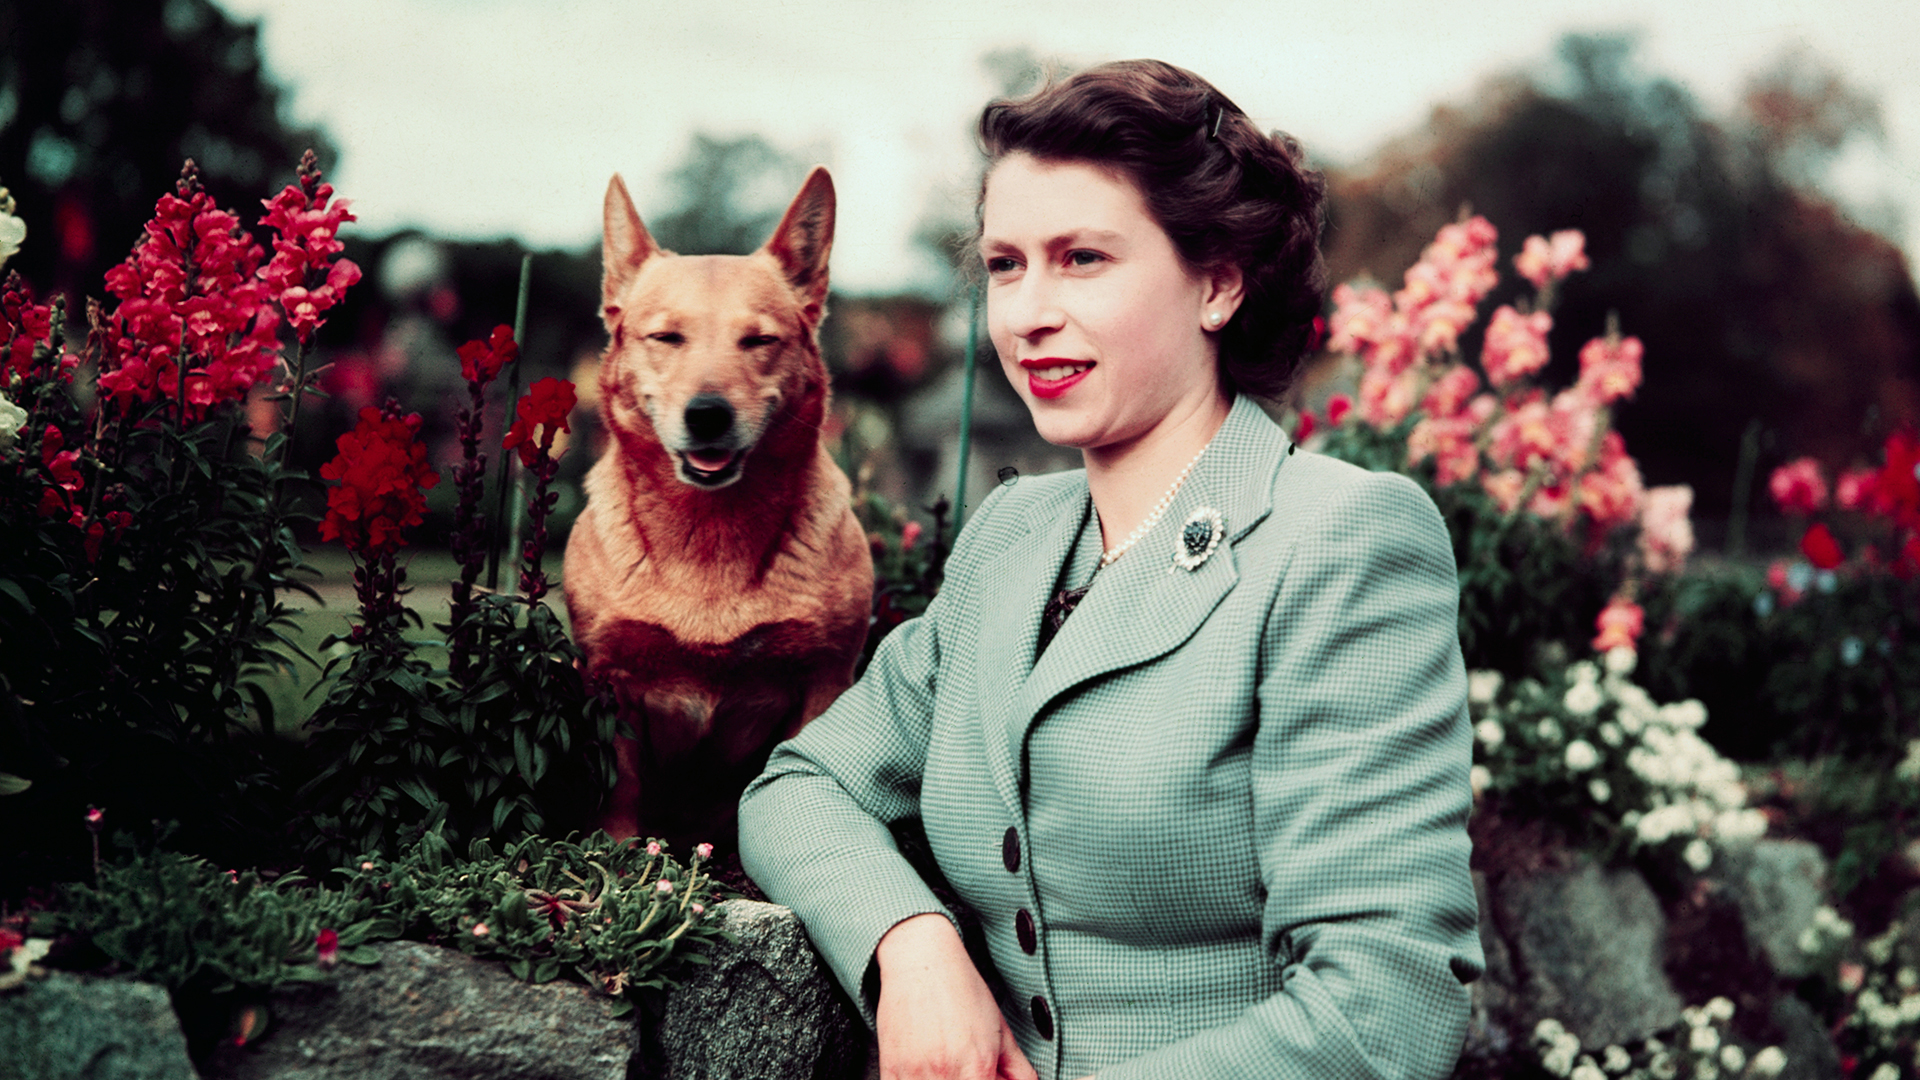 February 6, 1952: Princess Elizabeth Became the Queen, Modernizing the Monarchy for a New Generation